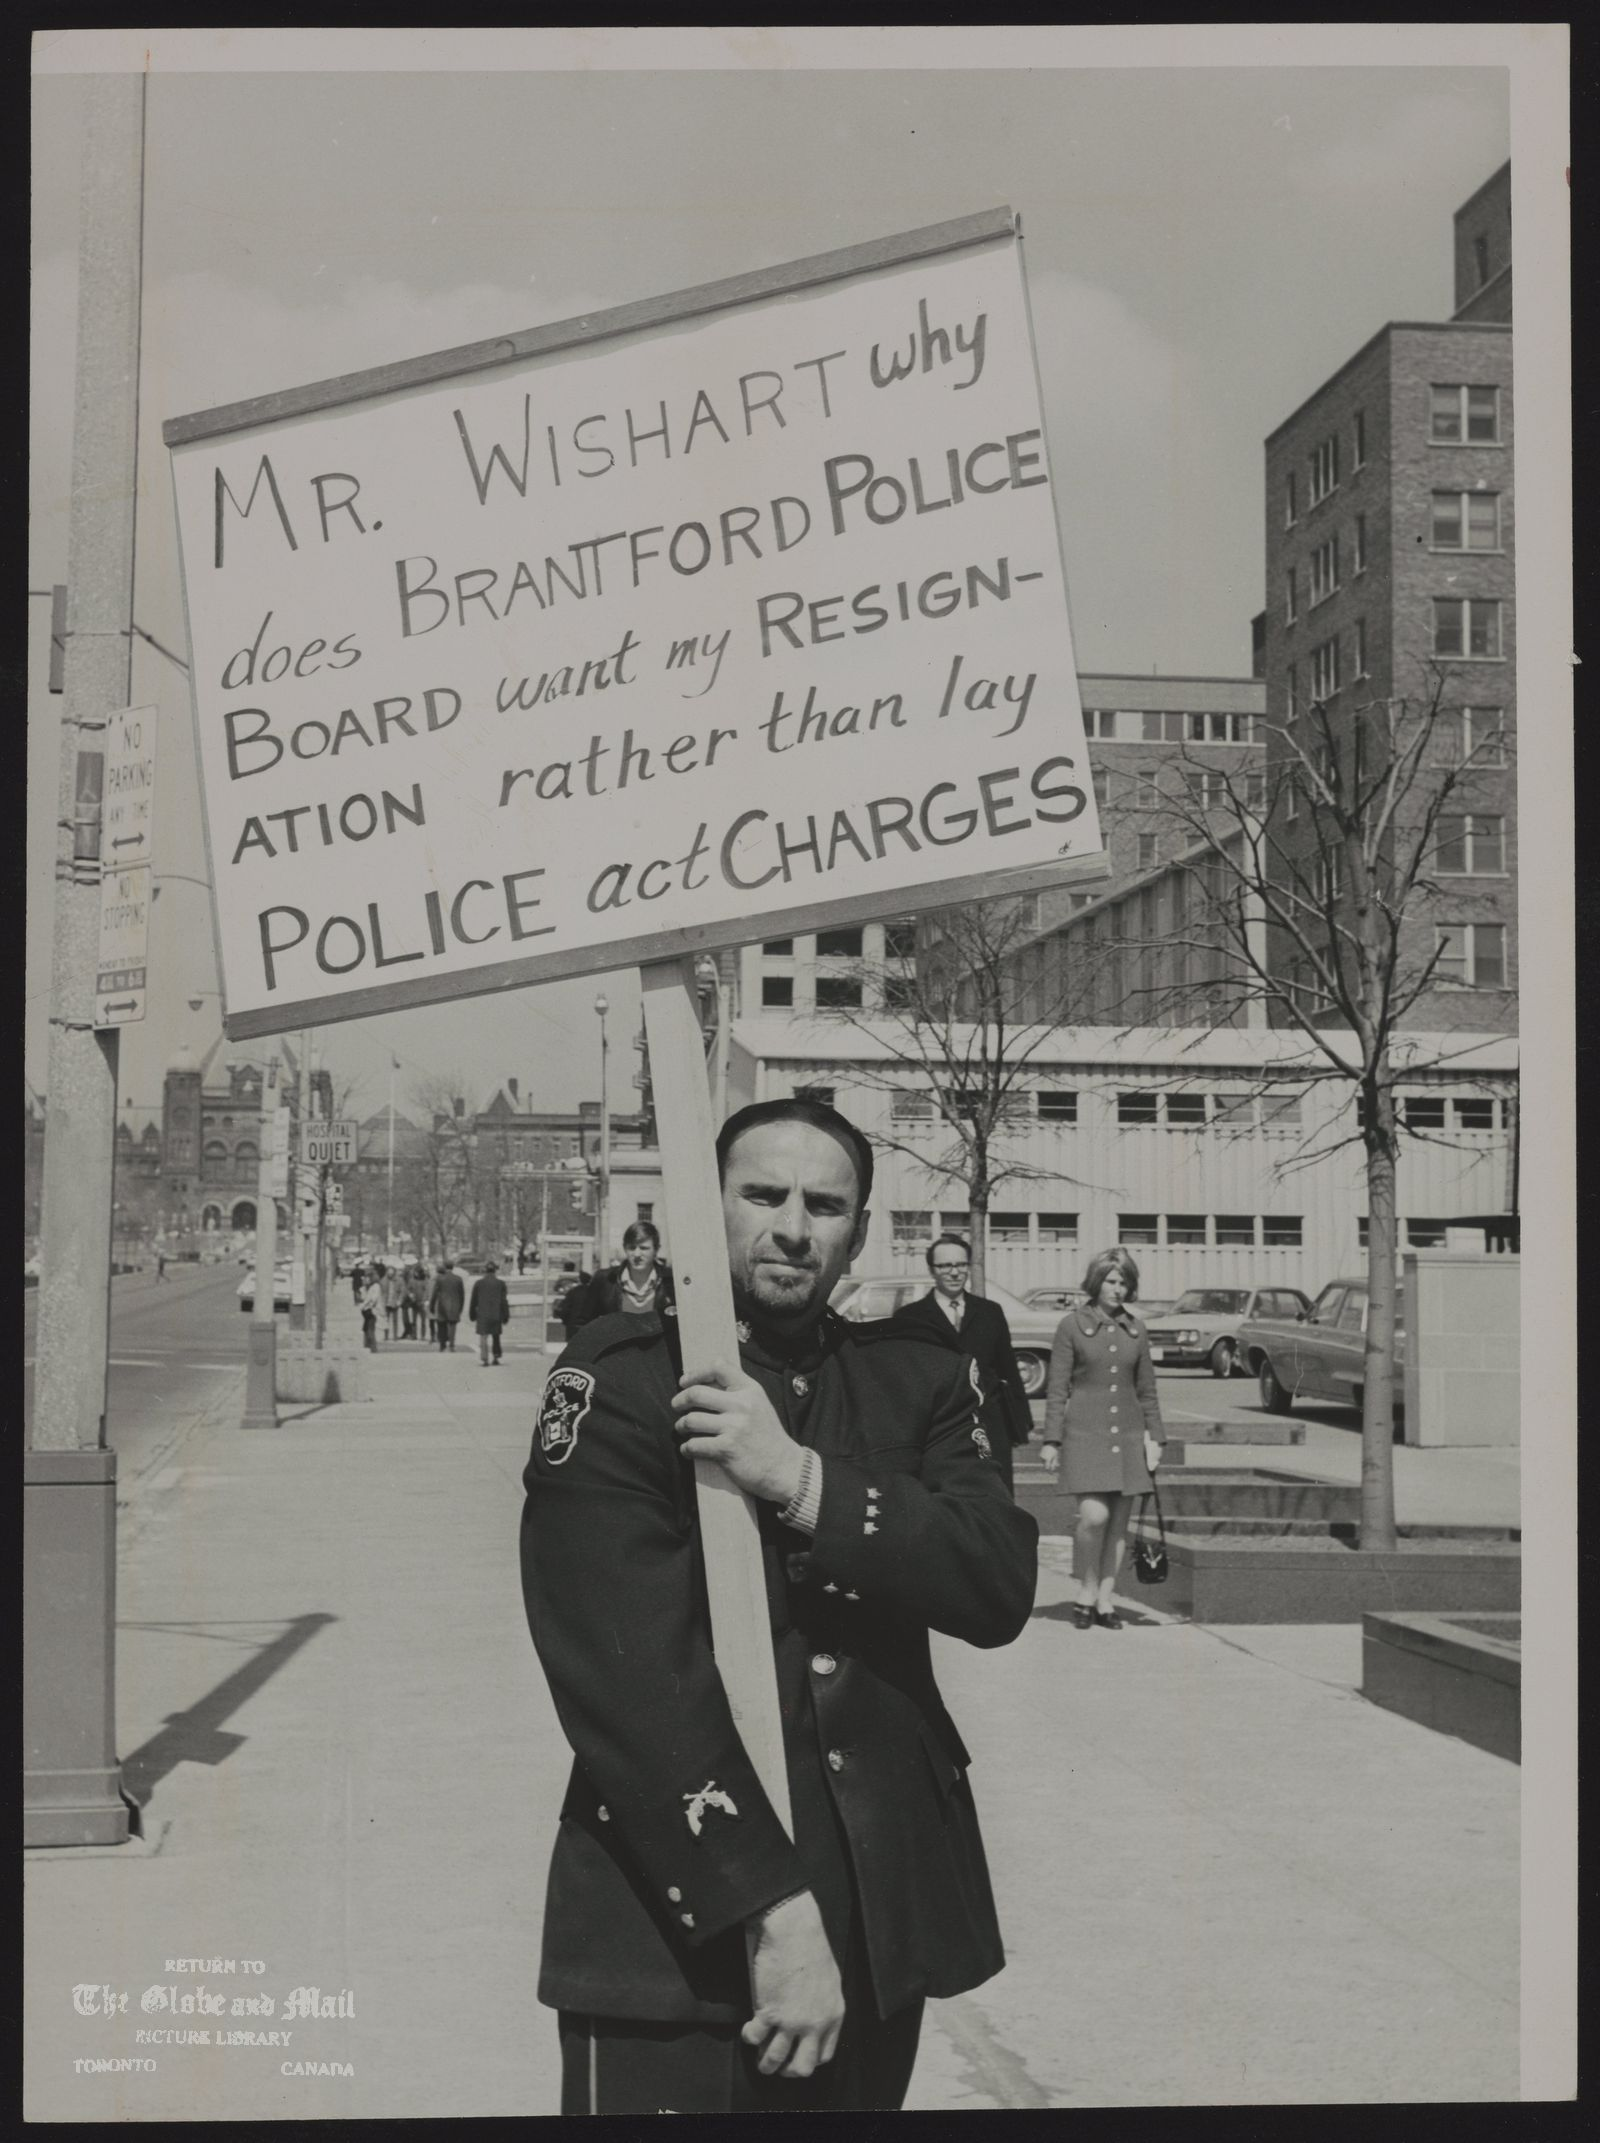 The notes transcribed from the back of this photograph are as follows: BRANTFORD city Police Department Constable Lester Lolli [Constable Lester Lolli of Brantford as he paraded outside the Ontario Police Commission offices with complaints of corruption inside his force]